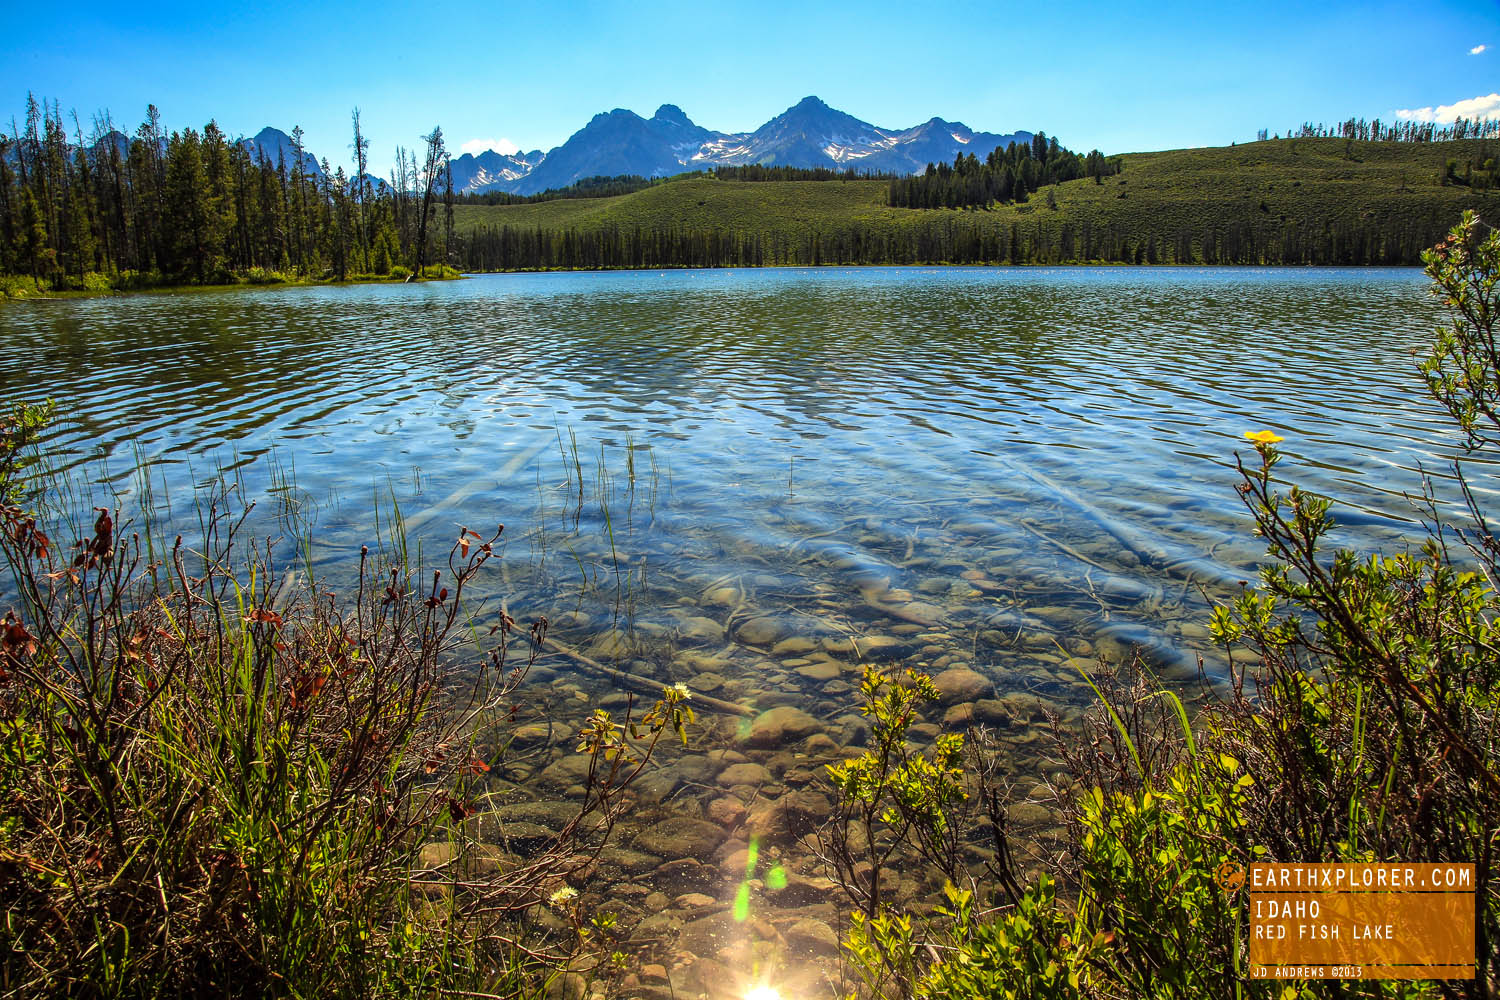 Red Fish Lake is 6,550 above sea level.